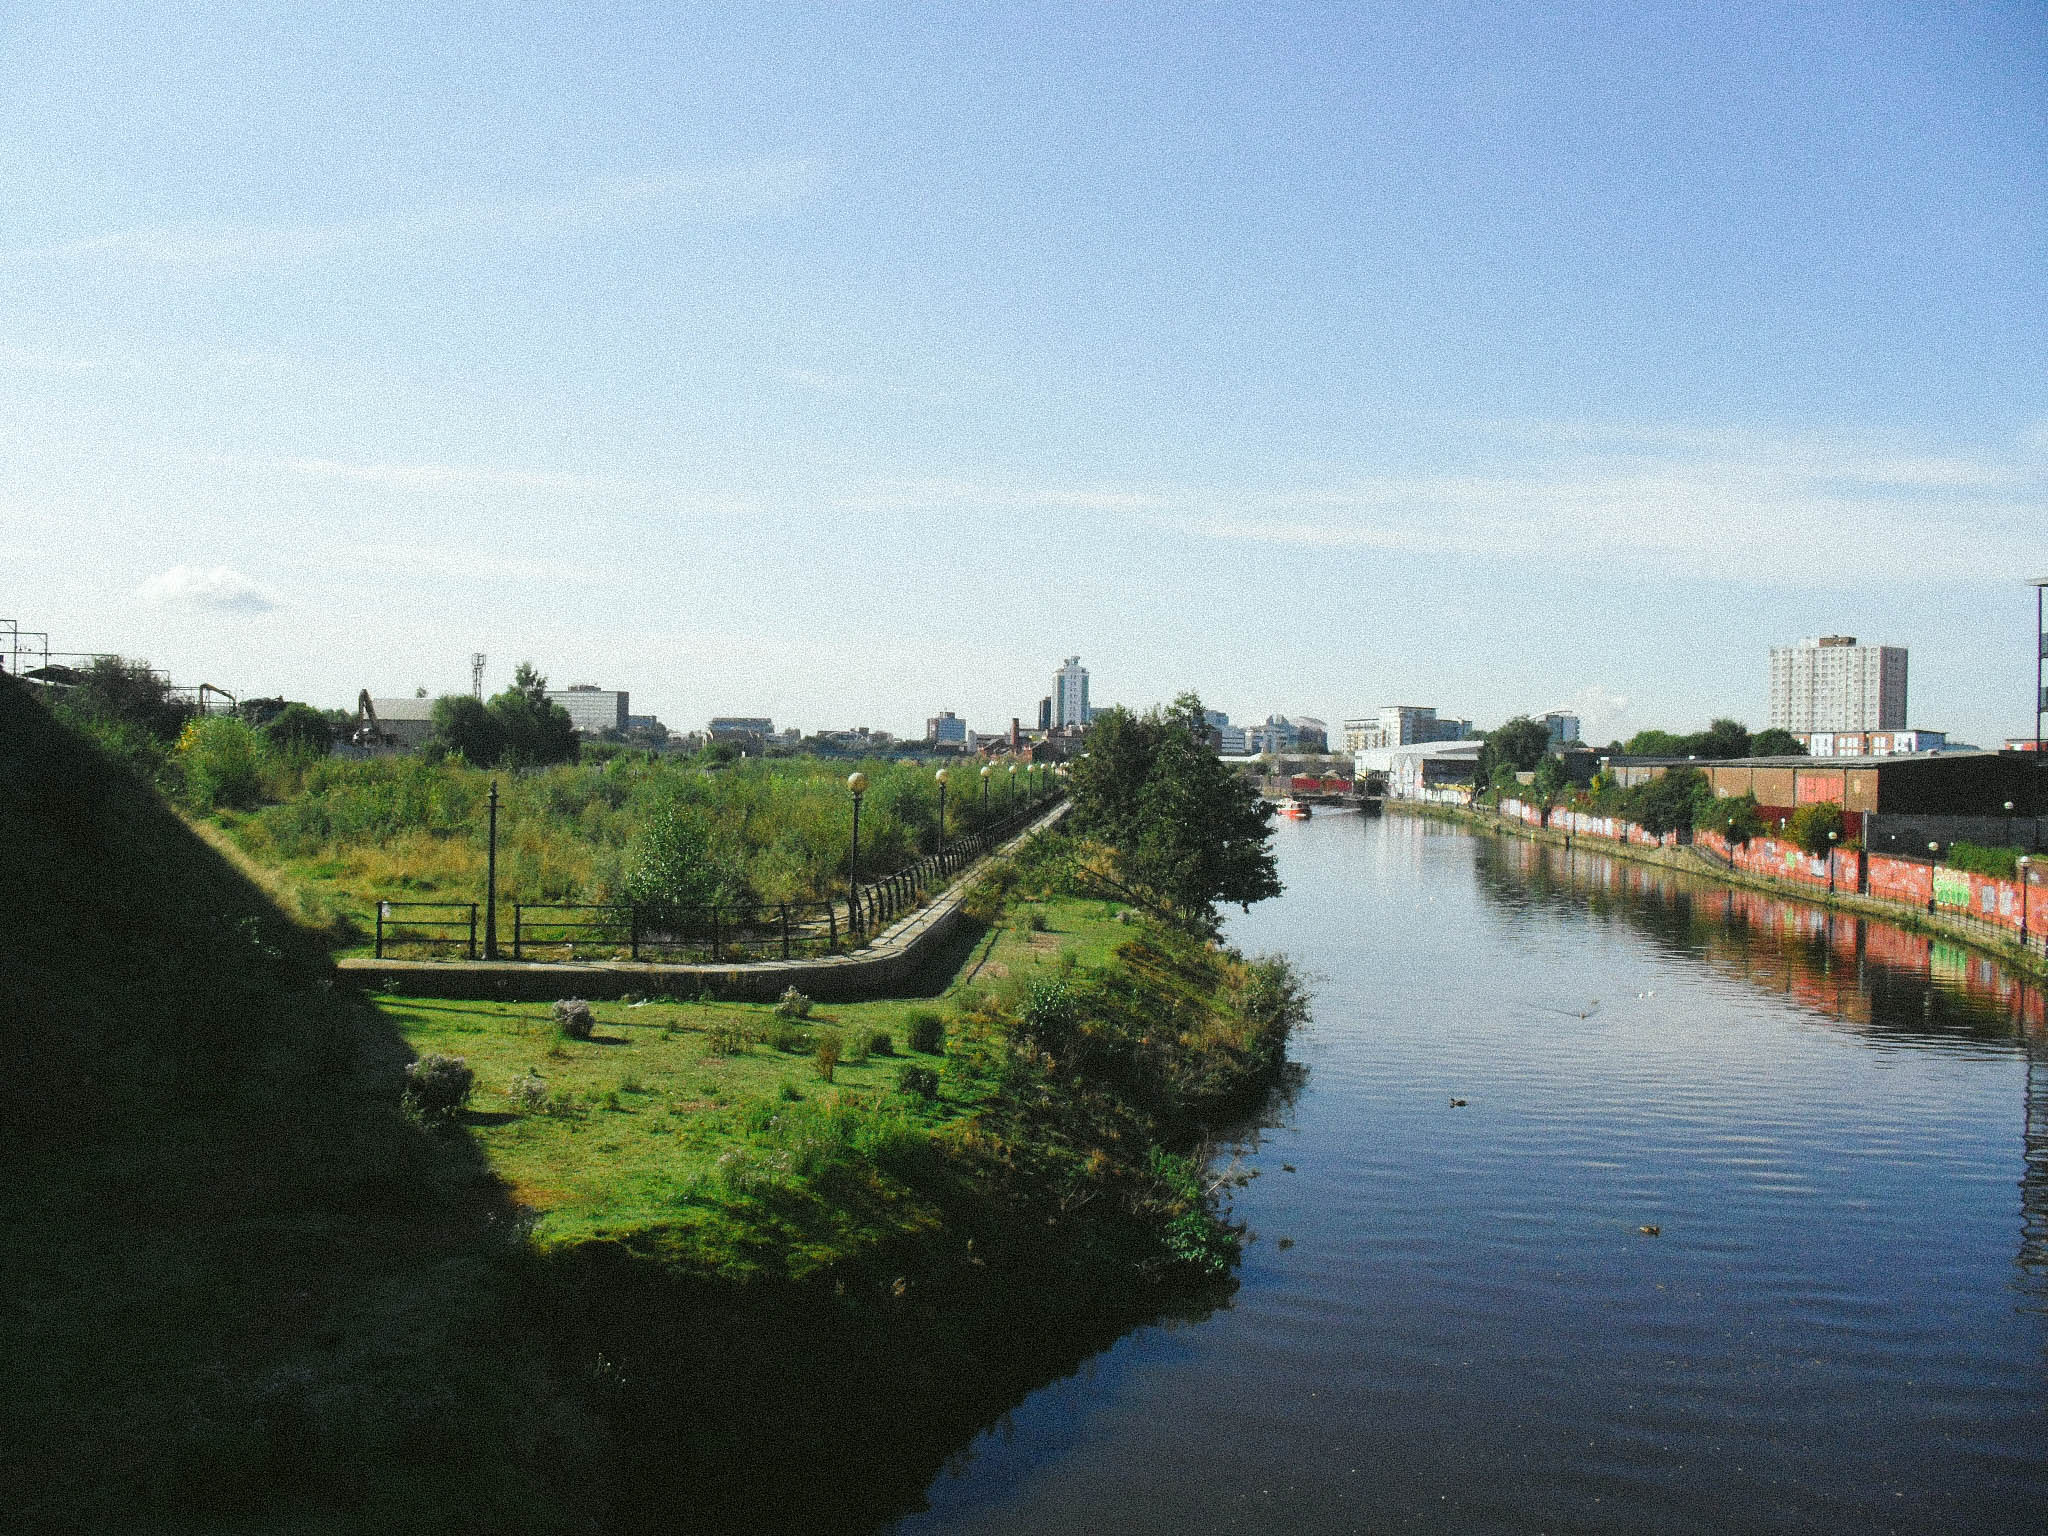 The section known as Ordsall Beach